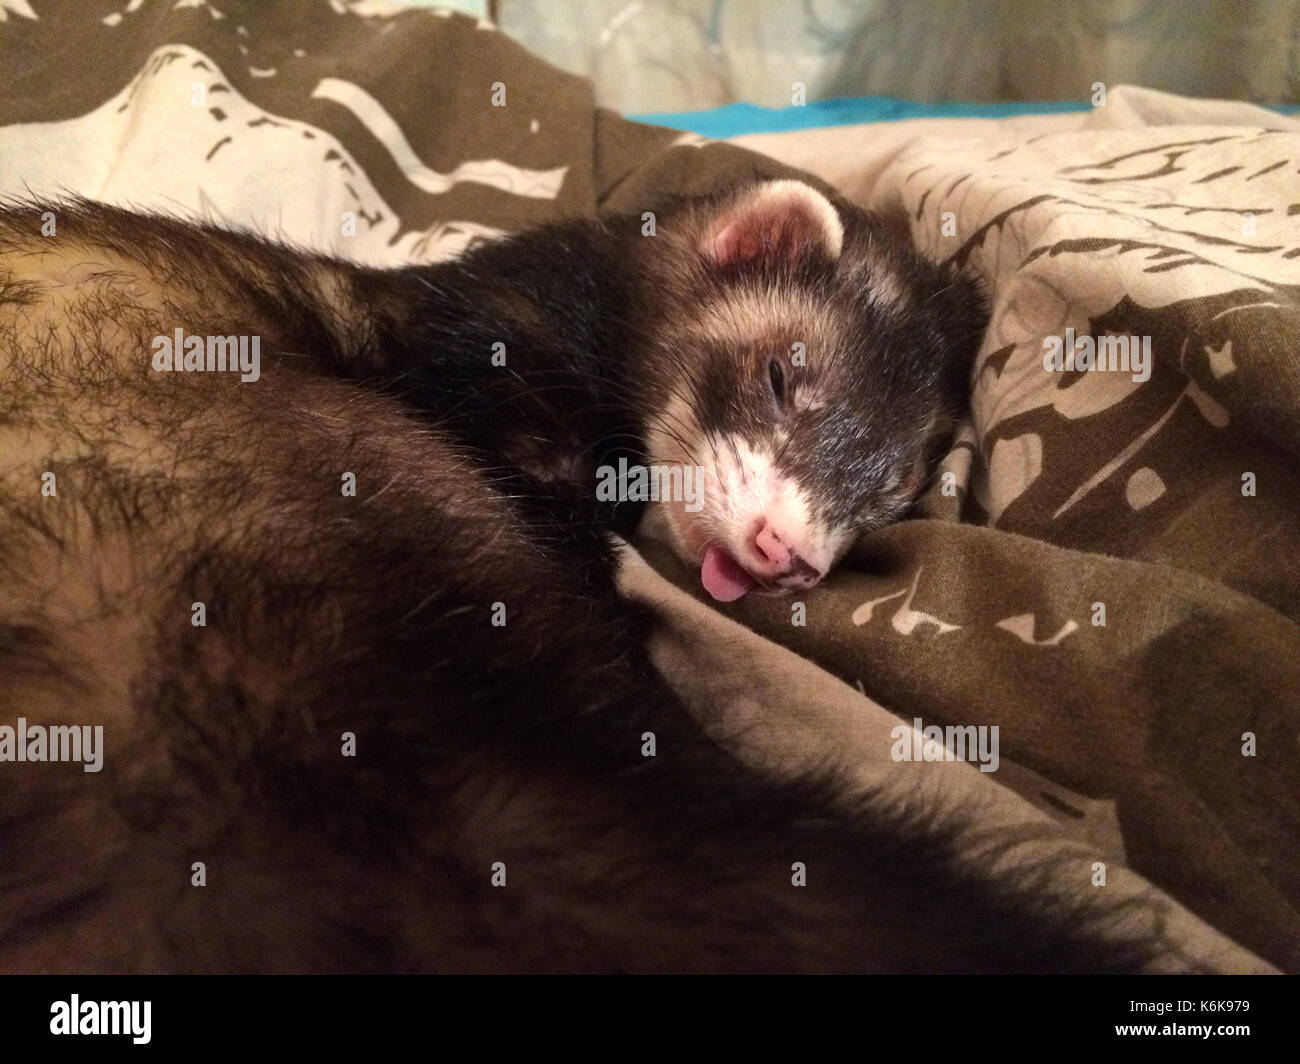 Sable ferret sleeping with his tongue out - Stock Image